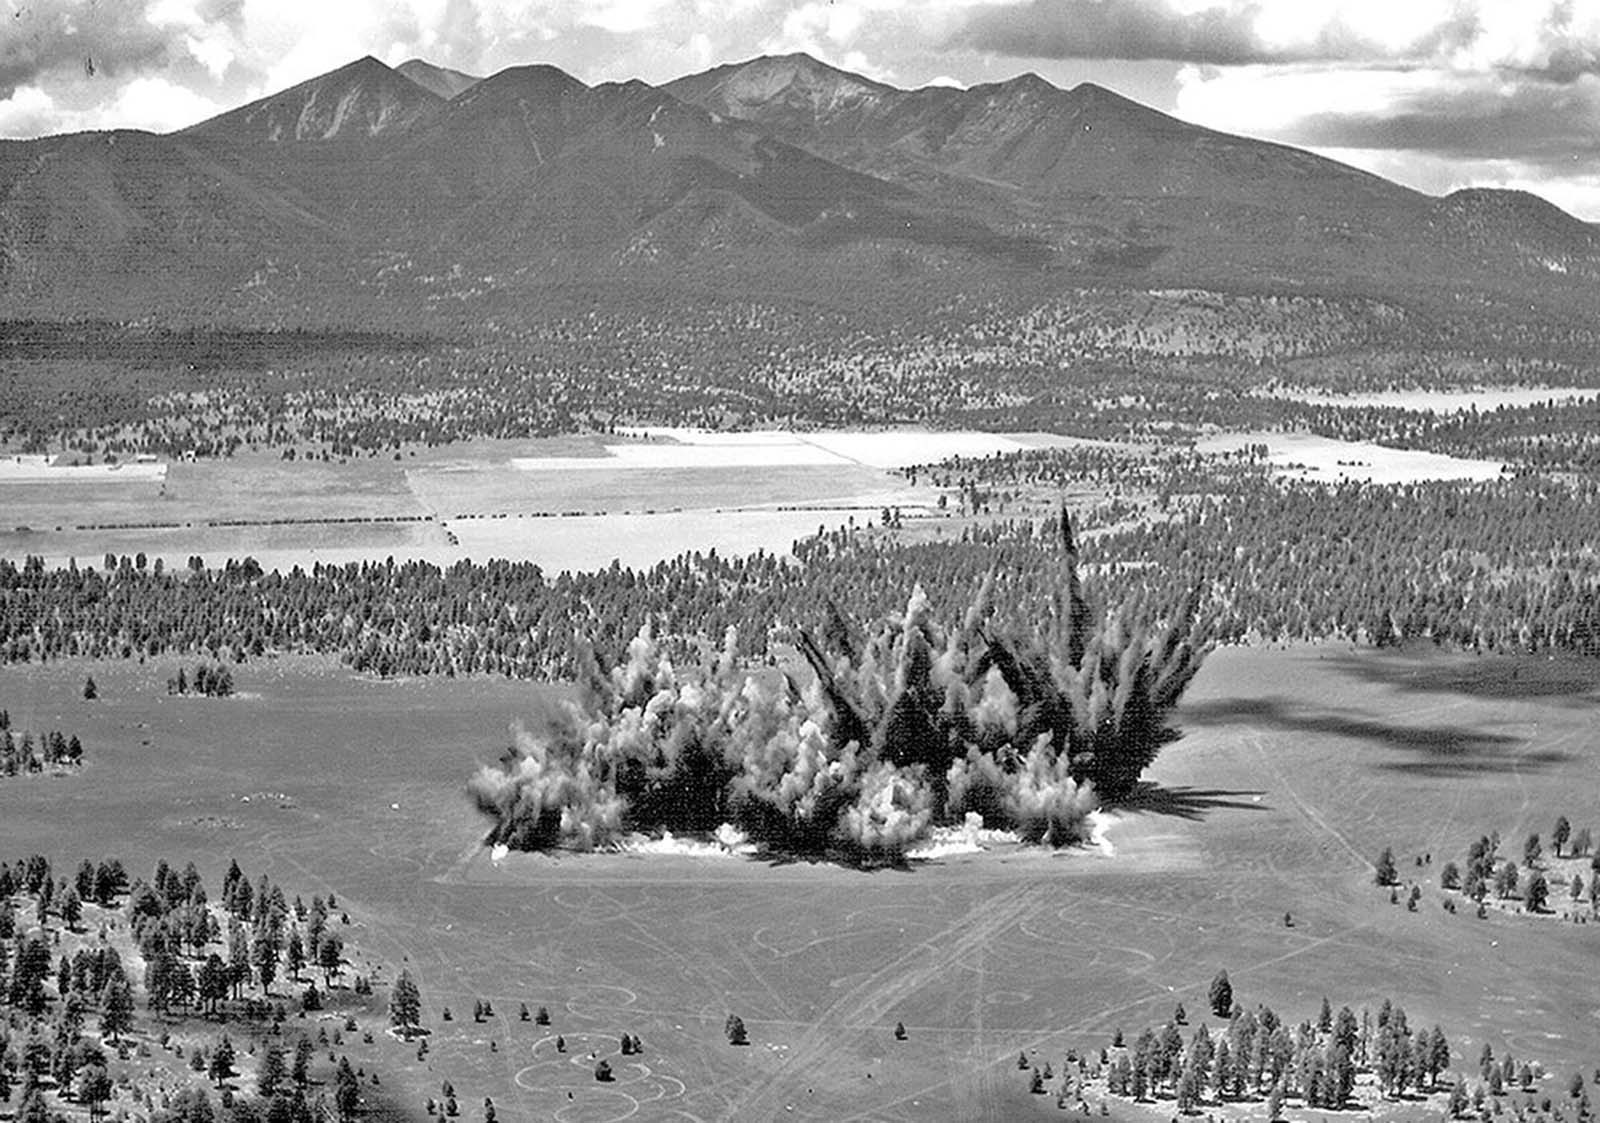 Explosions send dirt into the sky during the construction of Cinder Lake Crater Field #2 on July 27, 1968. A total of 354 craters were carved out of the Arizona landscape in this field to create a simulated lunar surface.